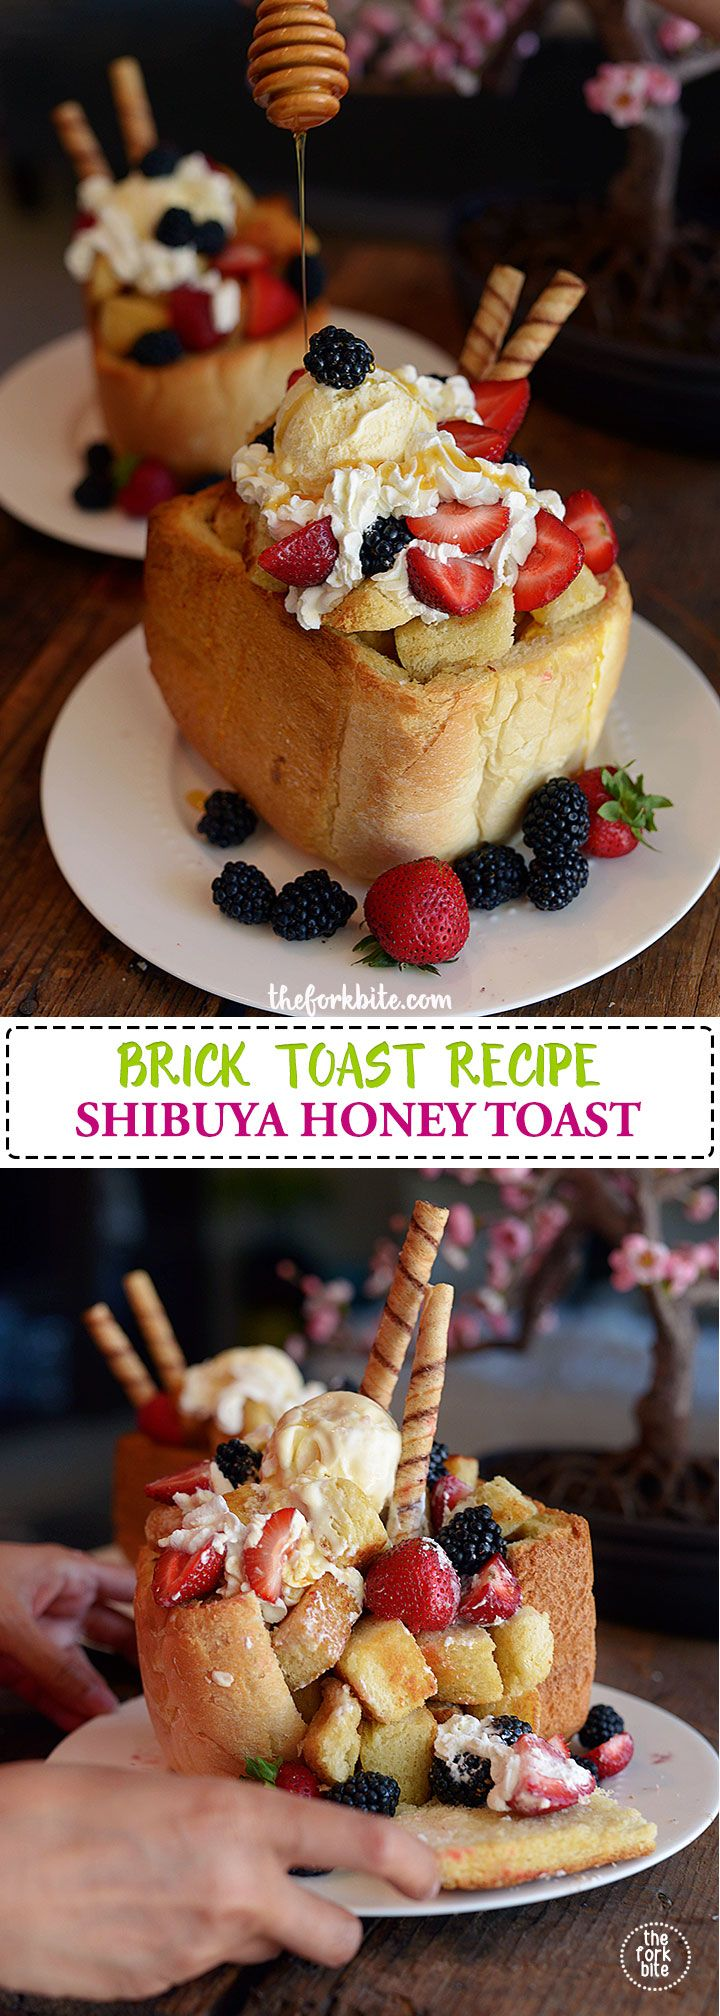 Shibuya Honey Toast - It's a delicious and attractive lighter dessert your friends and family will love.